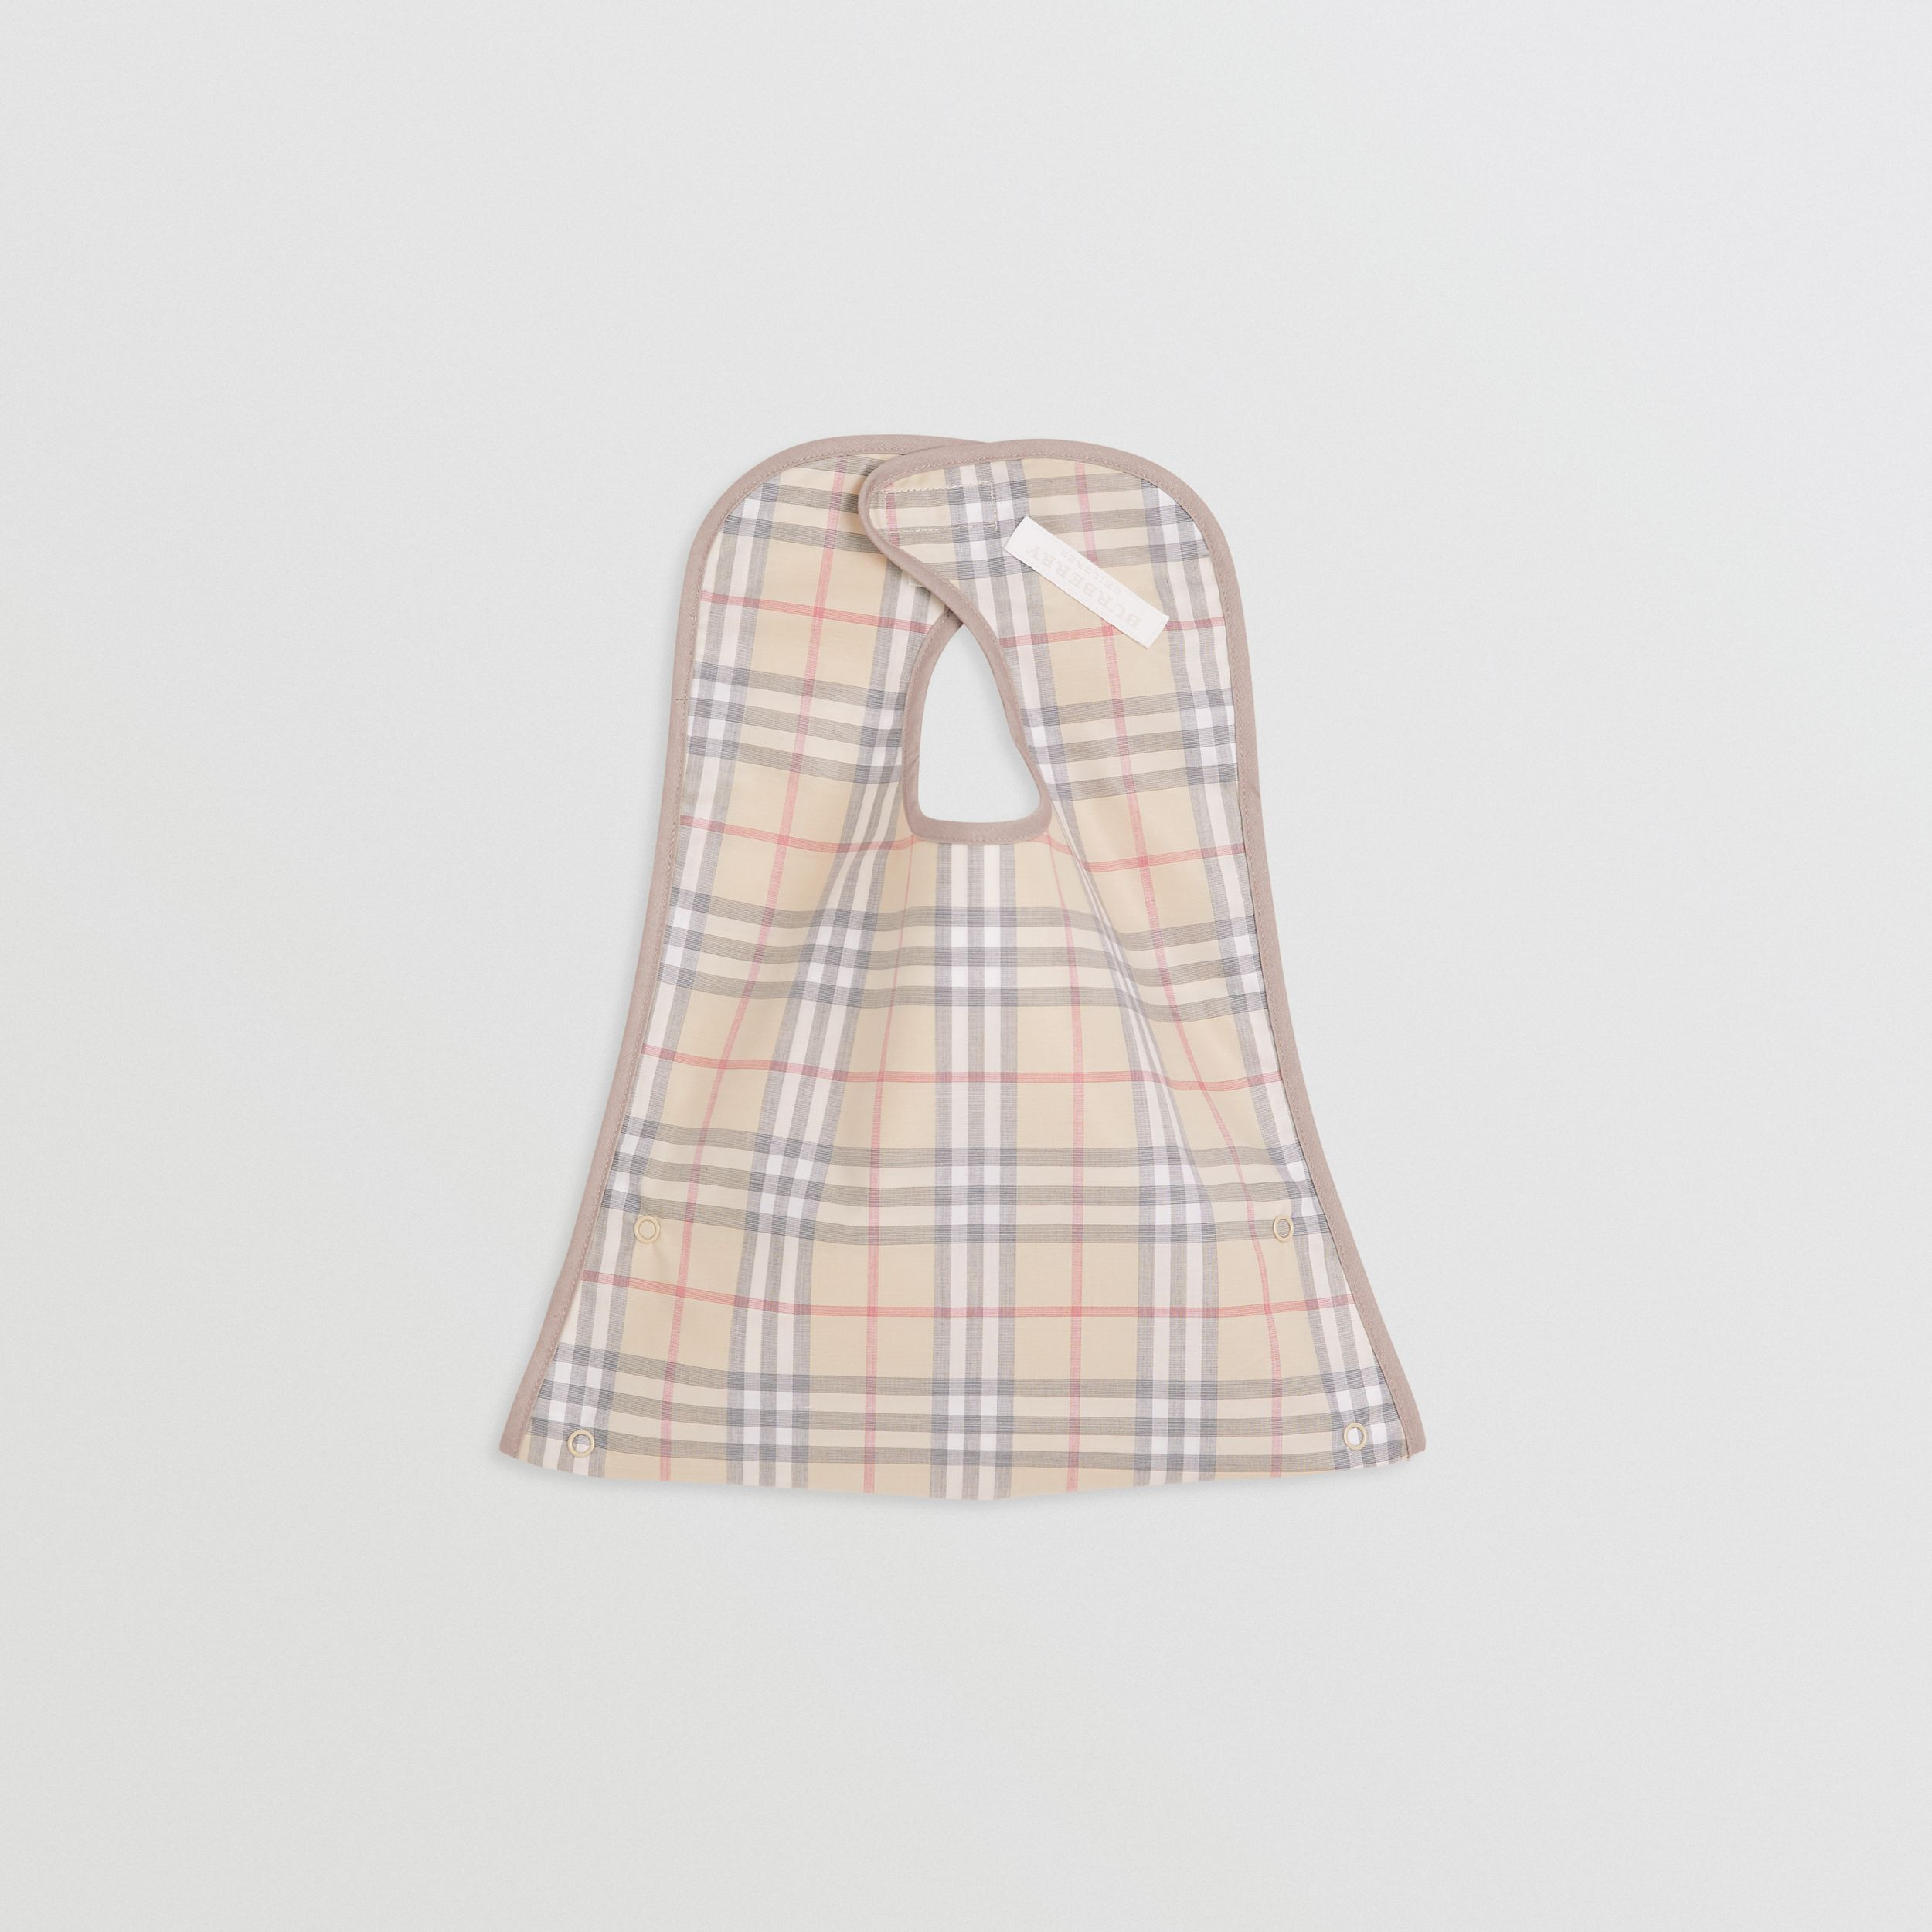 Coated Check Cotton Baby Bib in Pale Stone - Children | Burberry - 3